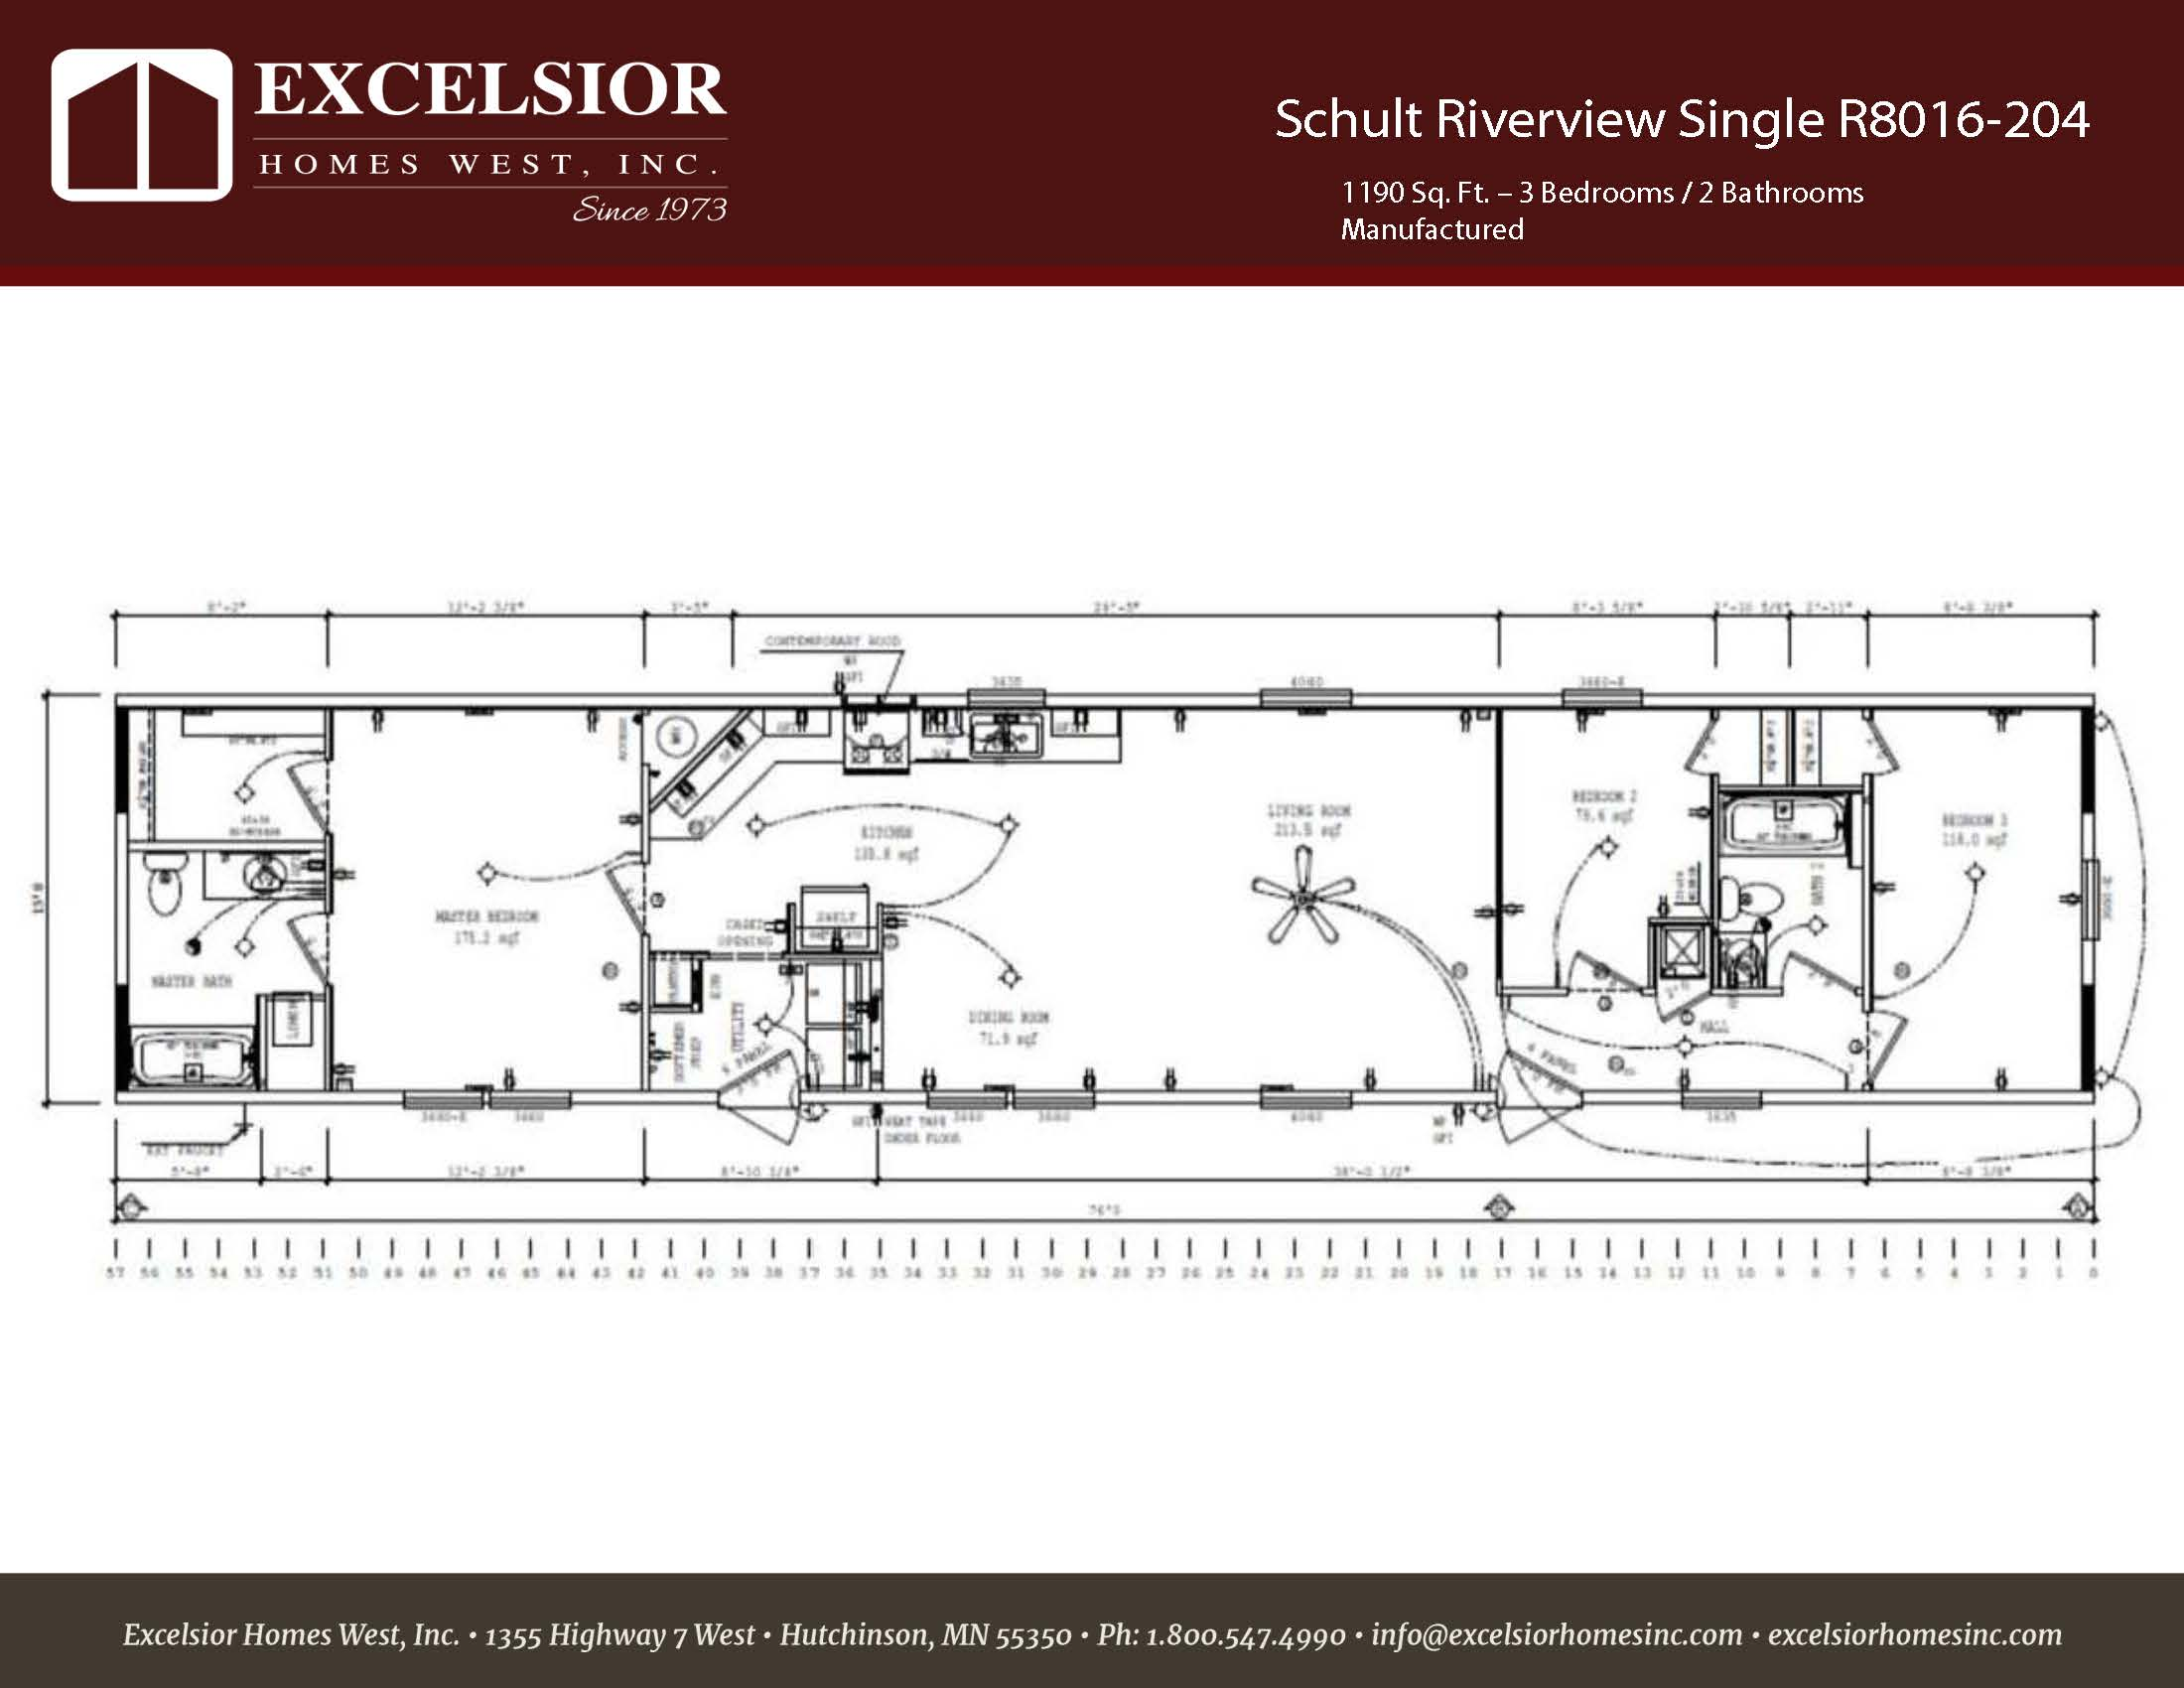 schult mobile home wiring diagram nissan sentra riverview singlewide r8016 2 excelsior homes